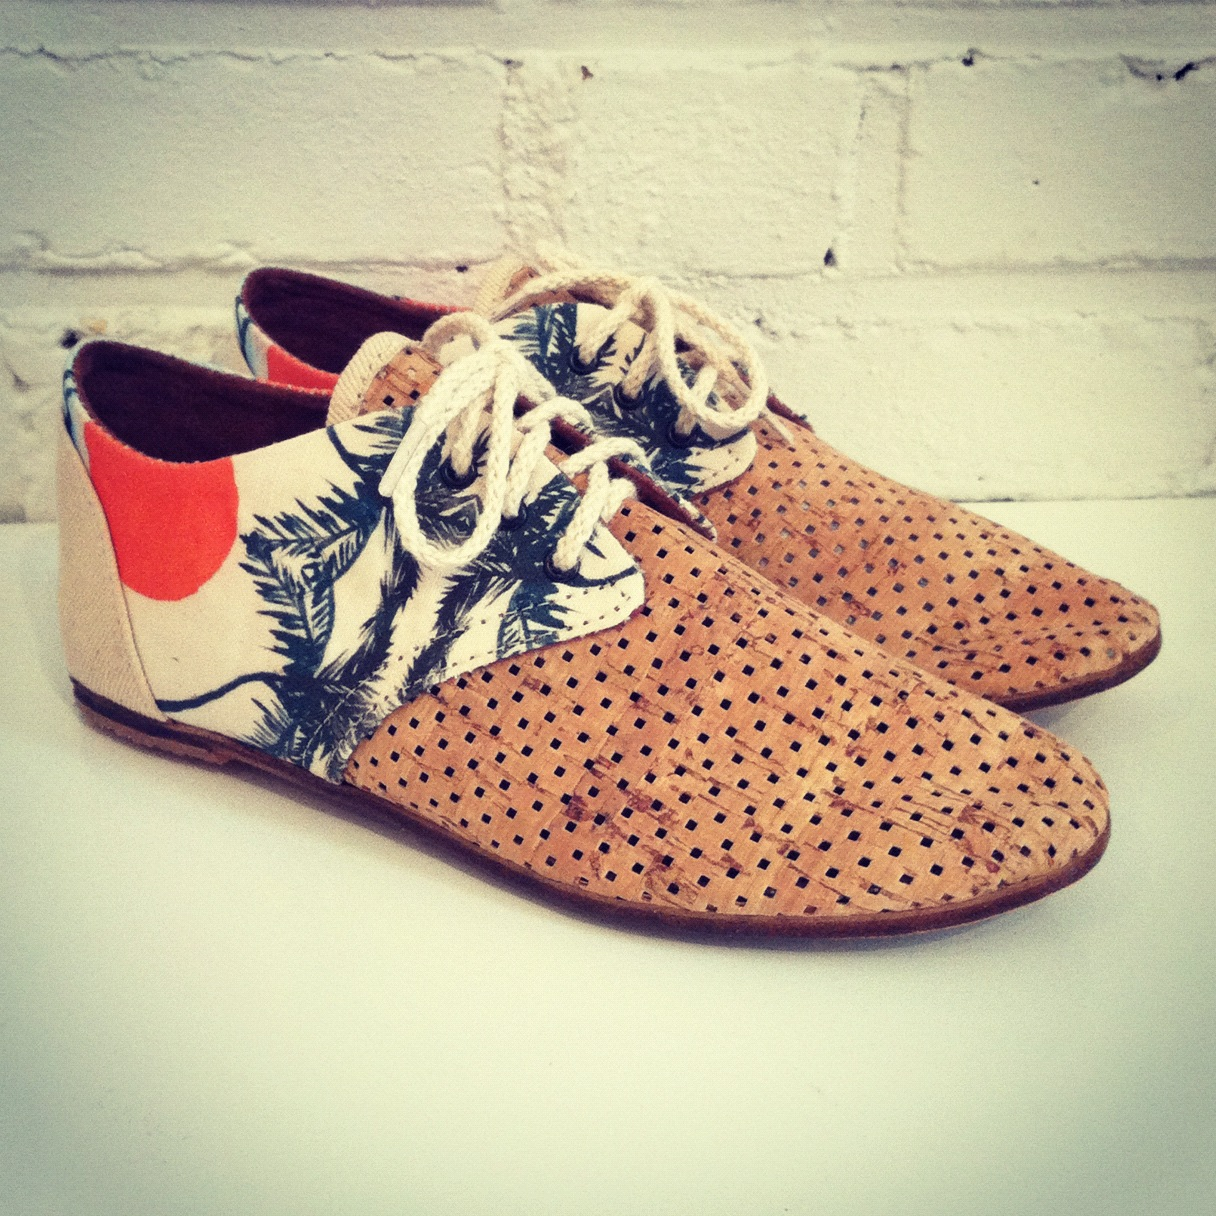 Image Result For Shoes For Men In